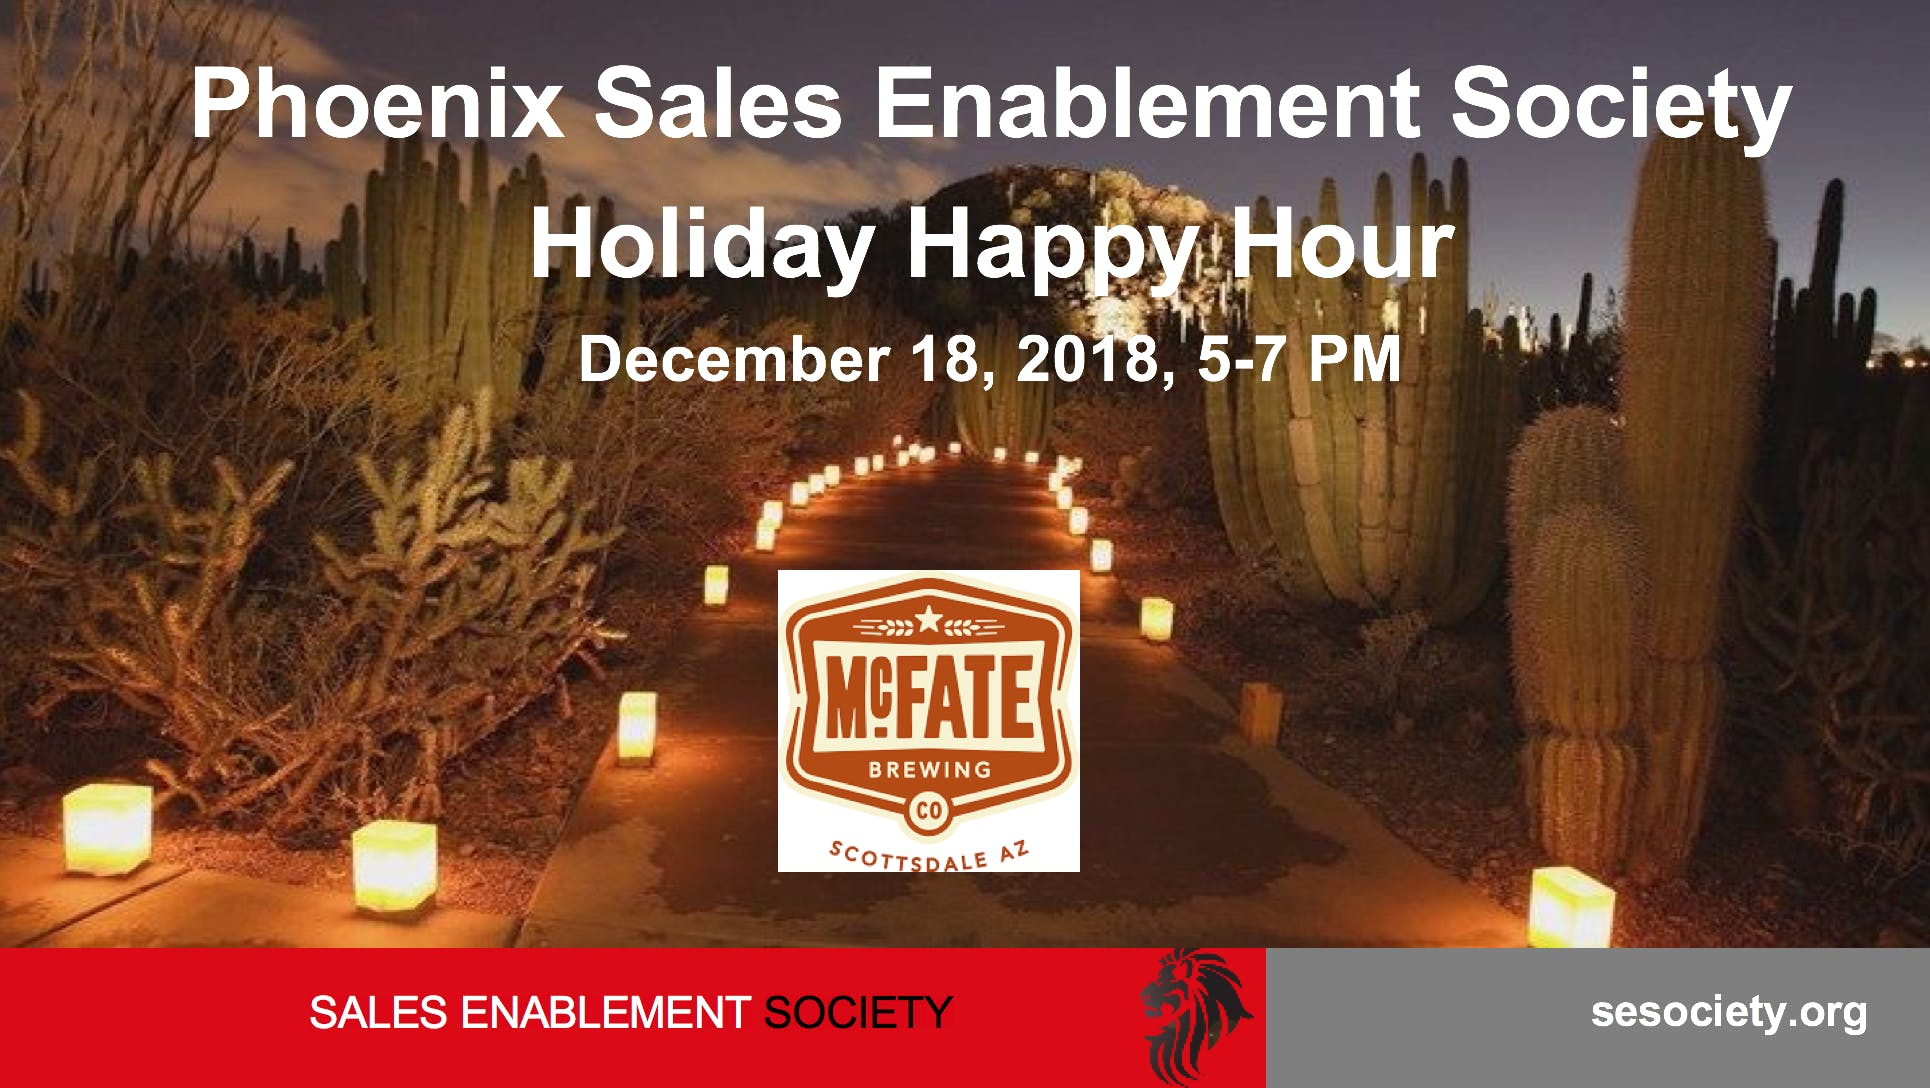 Phoenix SES Holiday Happy Hour